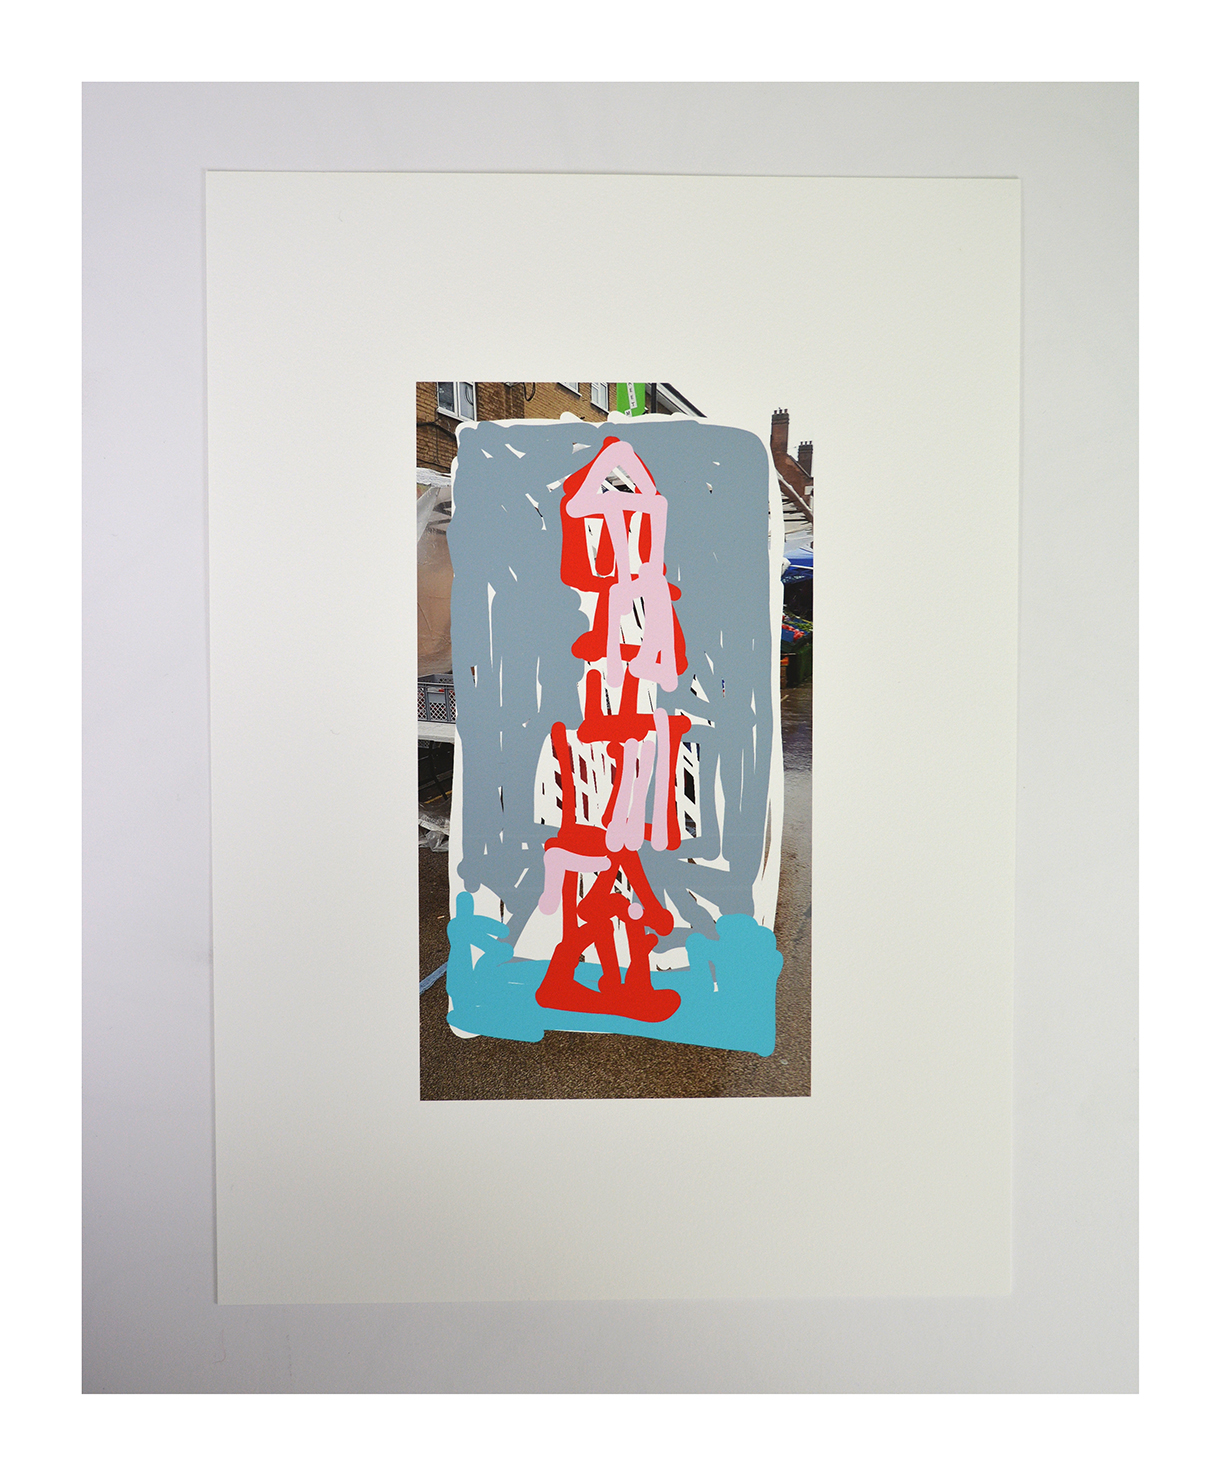 Tower/Market archival inkjet print on Somerset paper 39x28cm 2020 edition of 10